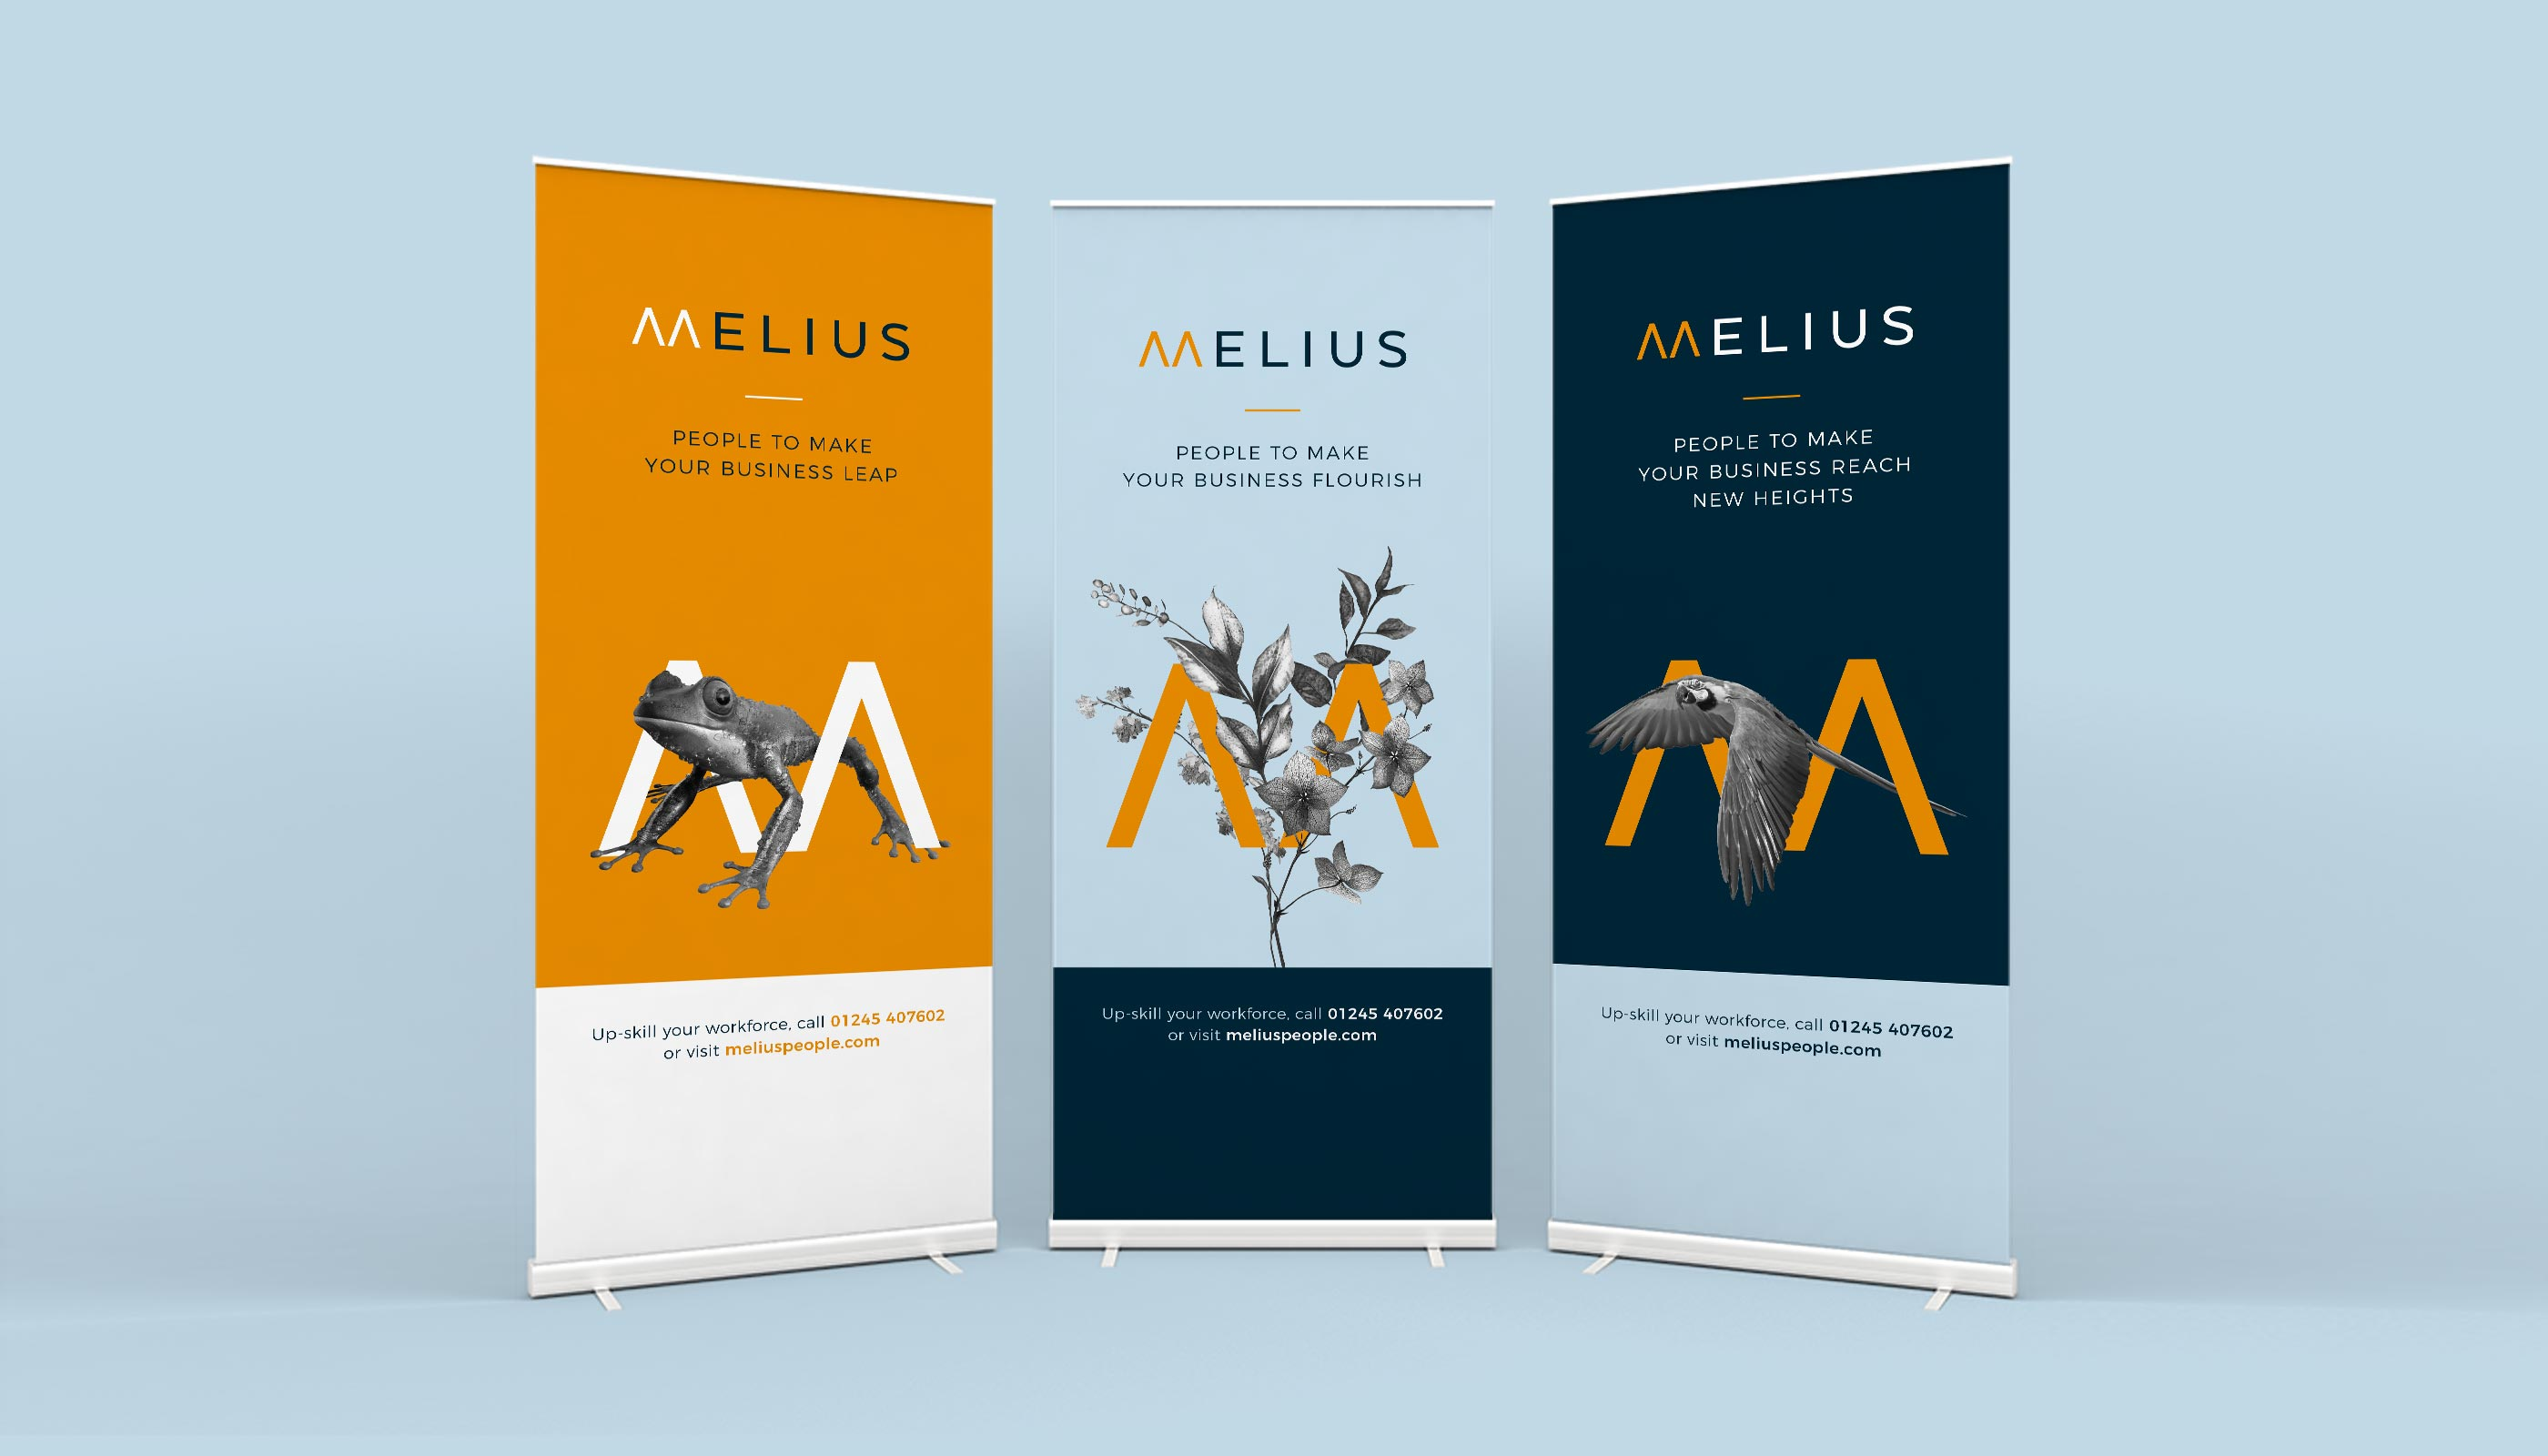 Roll up banner designs for Melius in Ipswich, Suffolk.